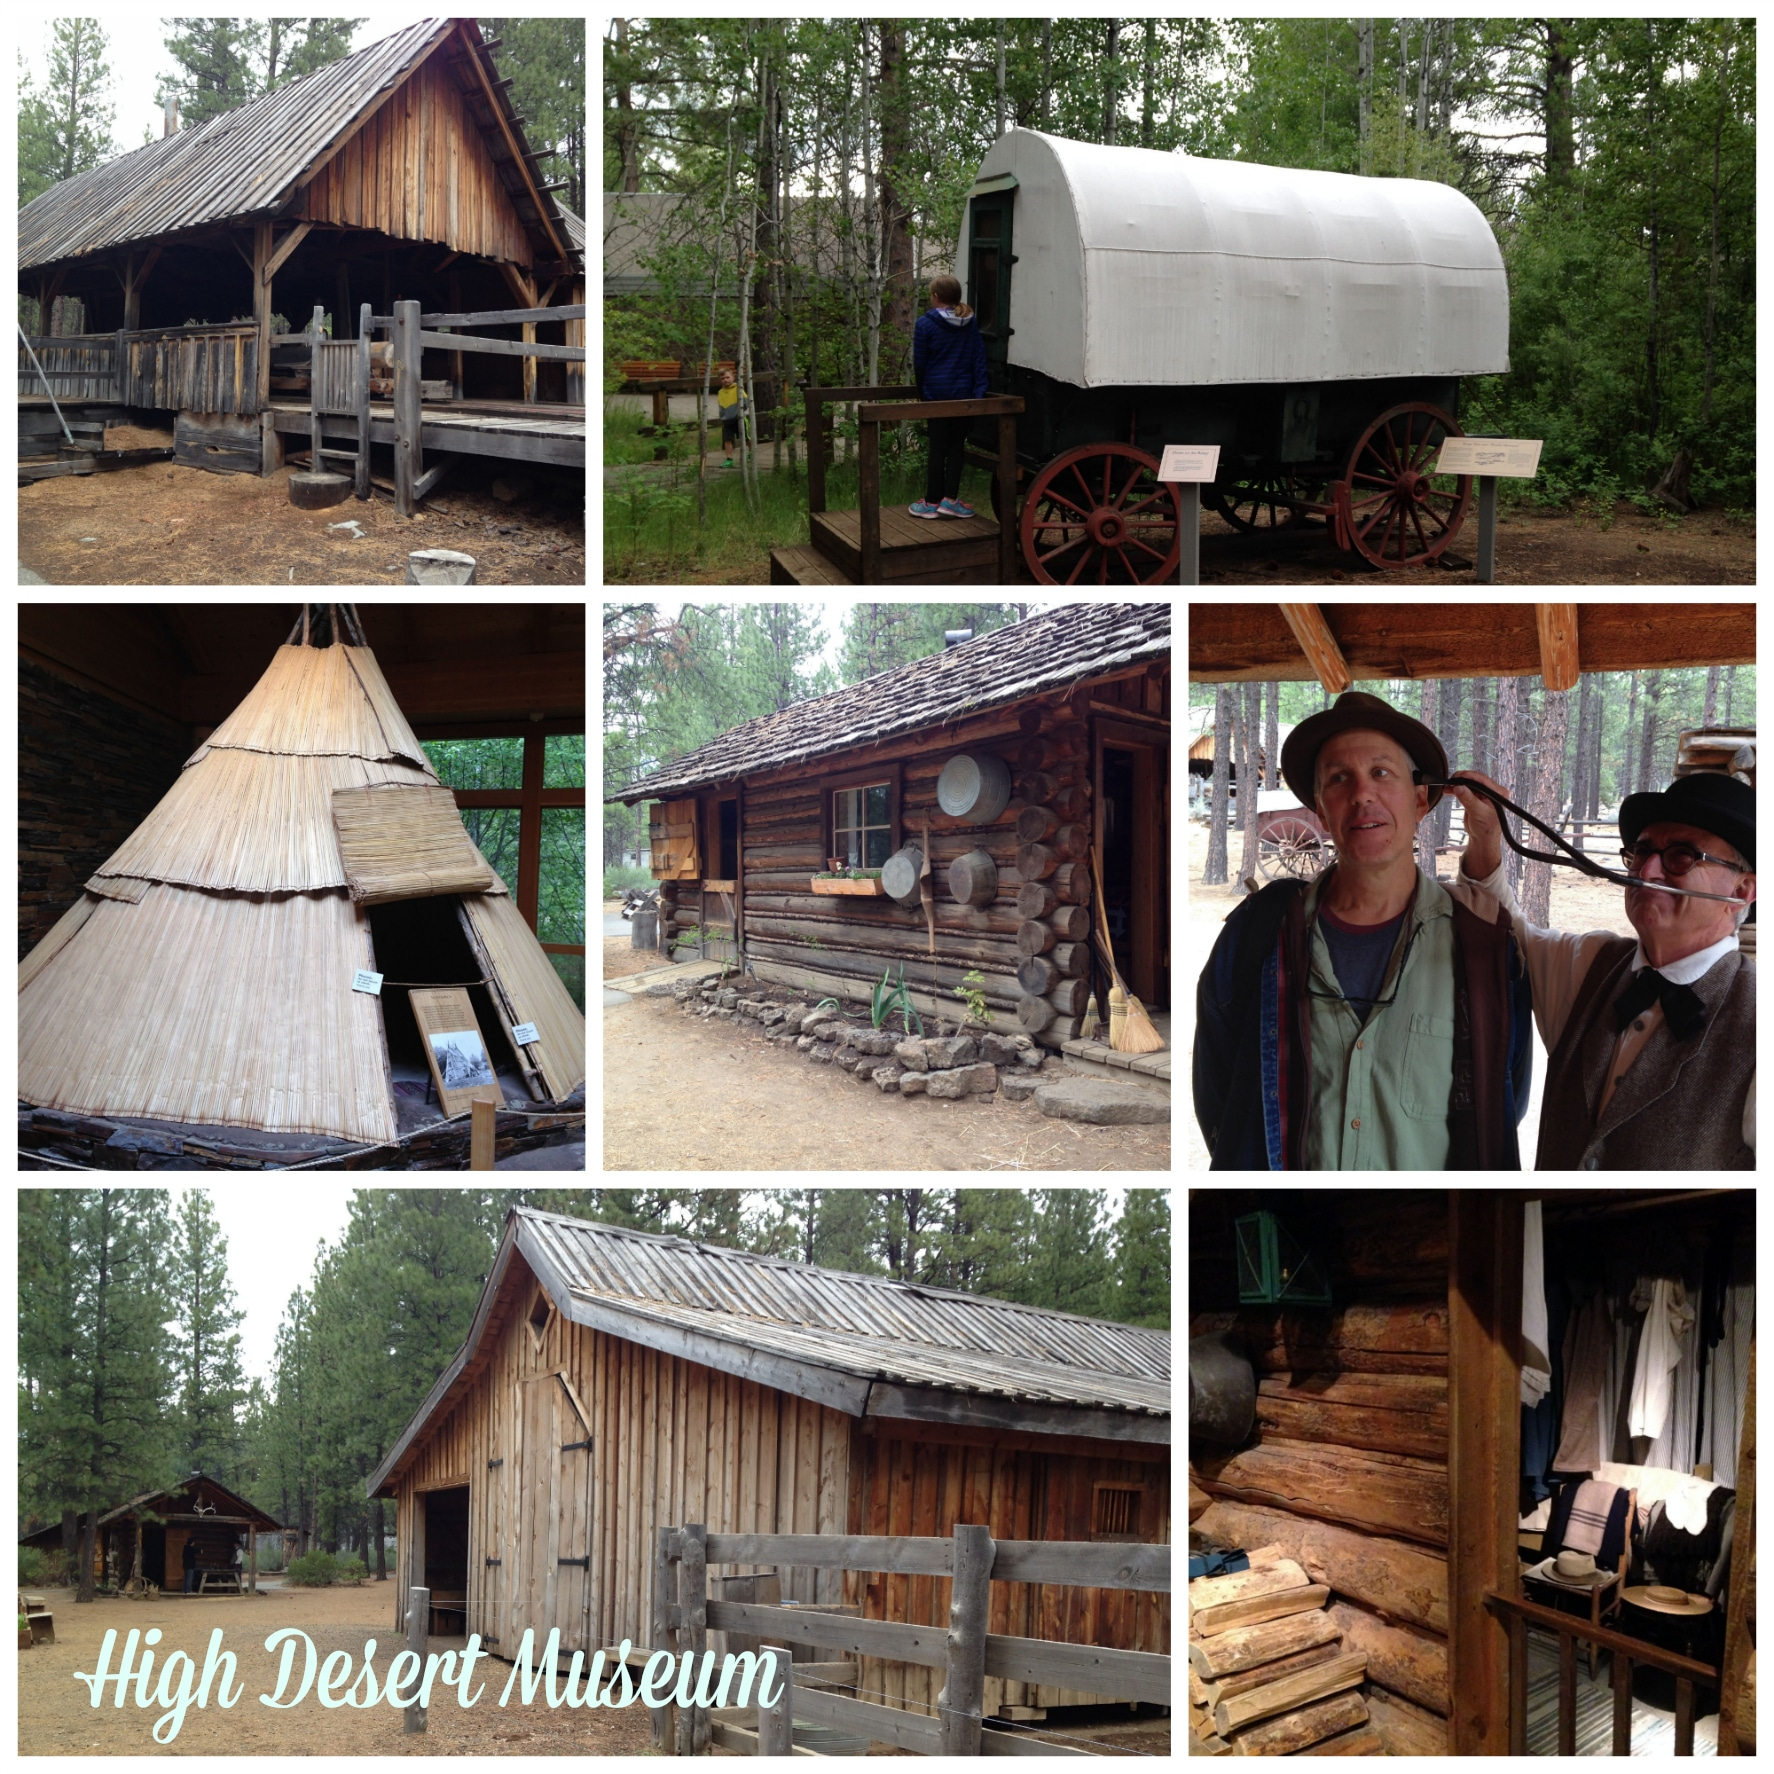 High Desert Museum collage - Bend, Oregon